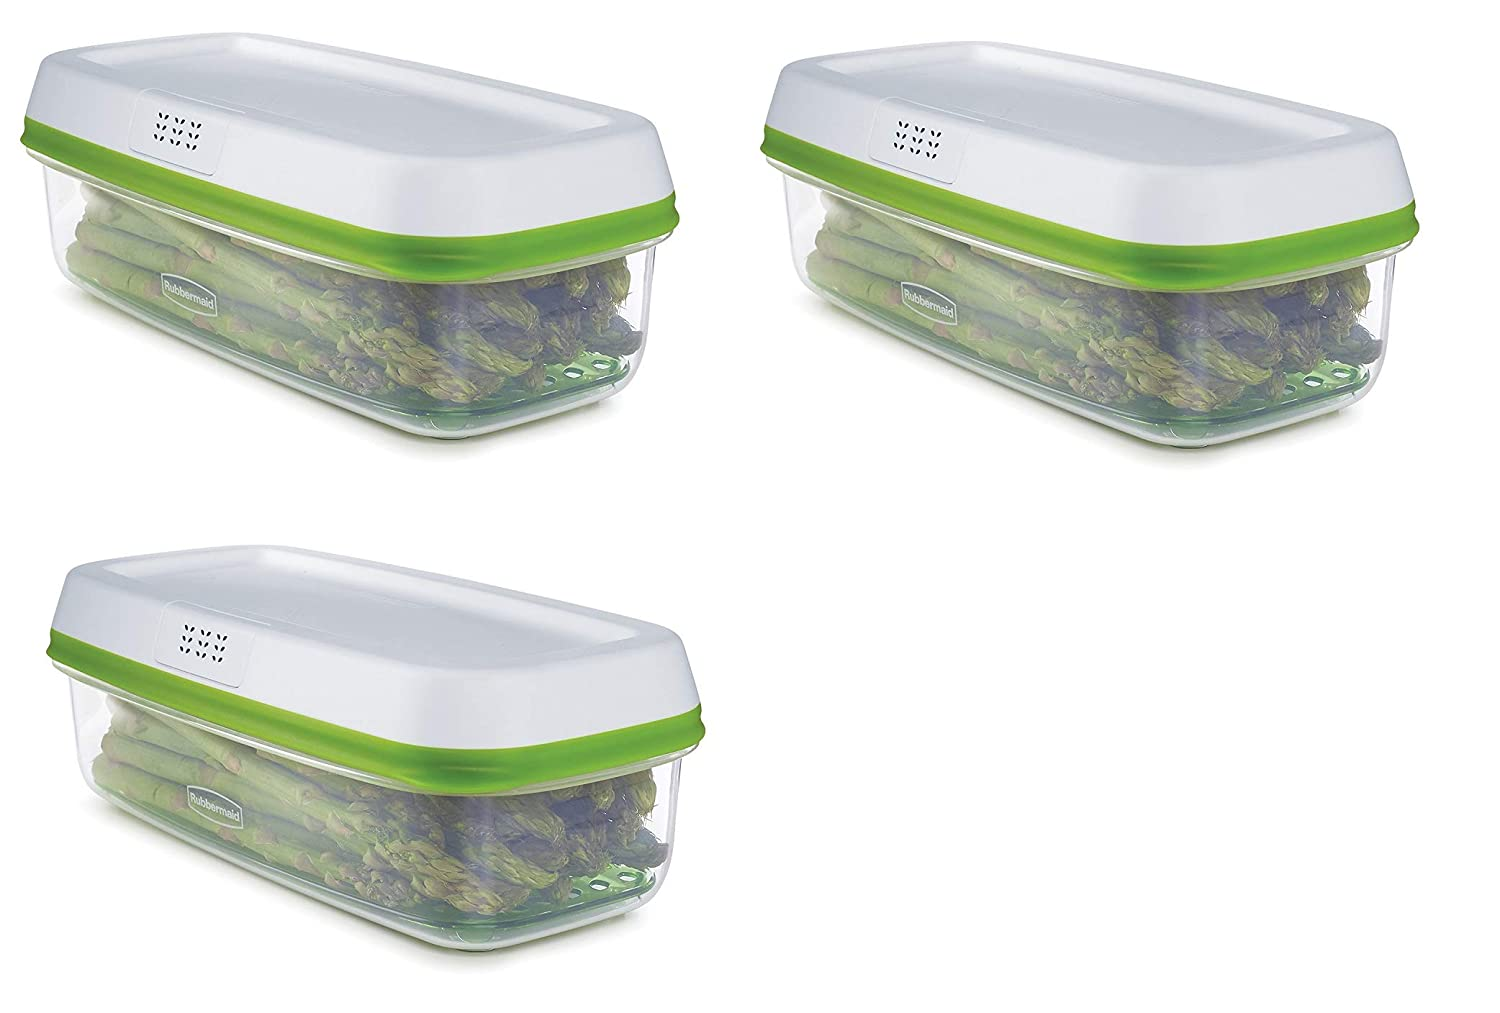 Rubbermaid FreshWorks Produce Saver Food Storage Container, Small Rectangle, 4 Cup, Green 1996982 Newell Brands